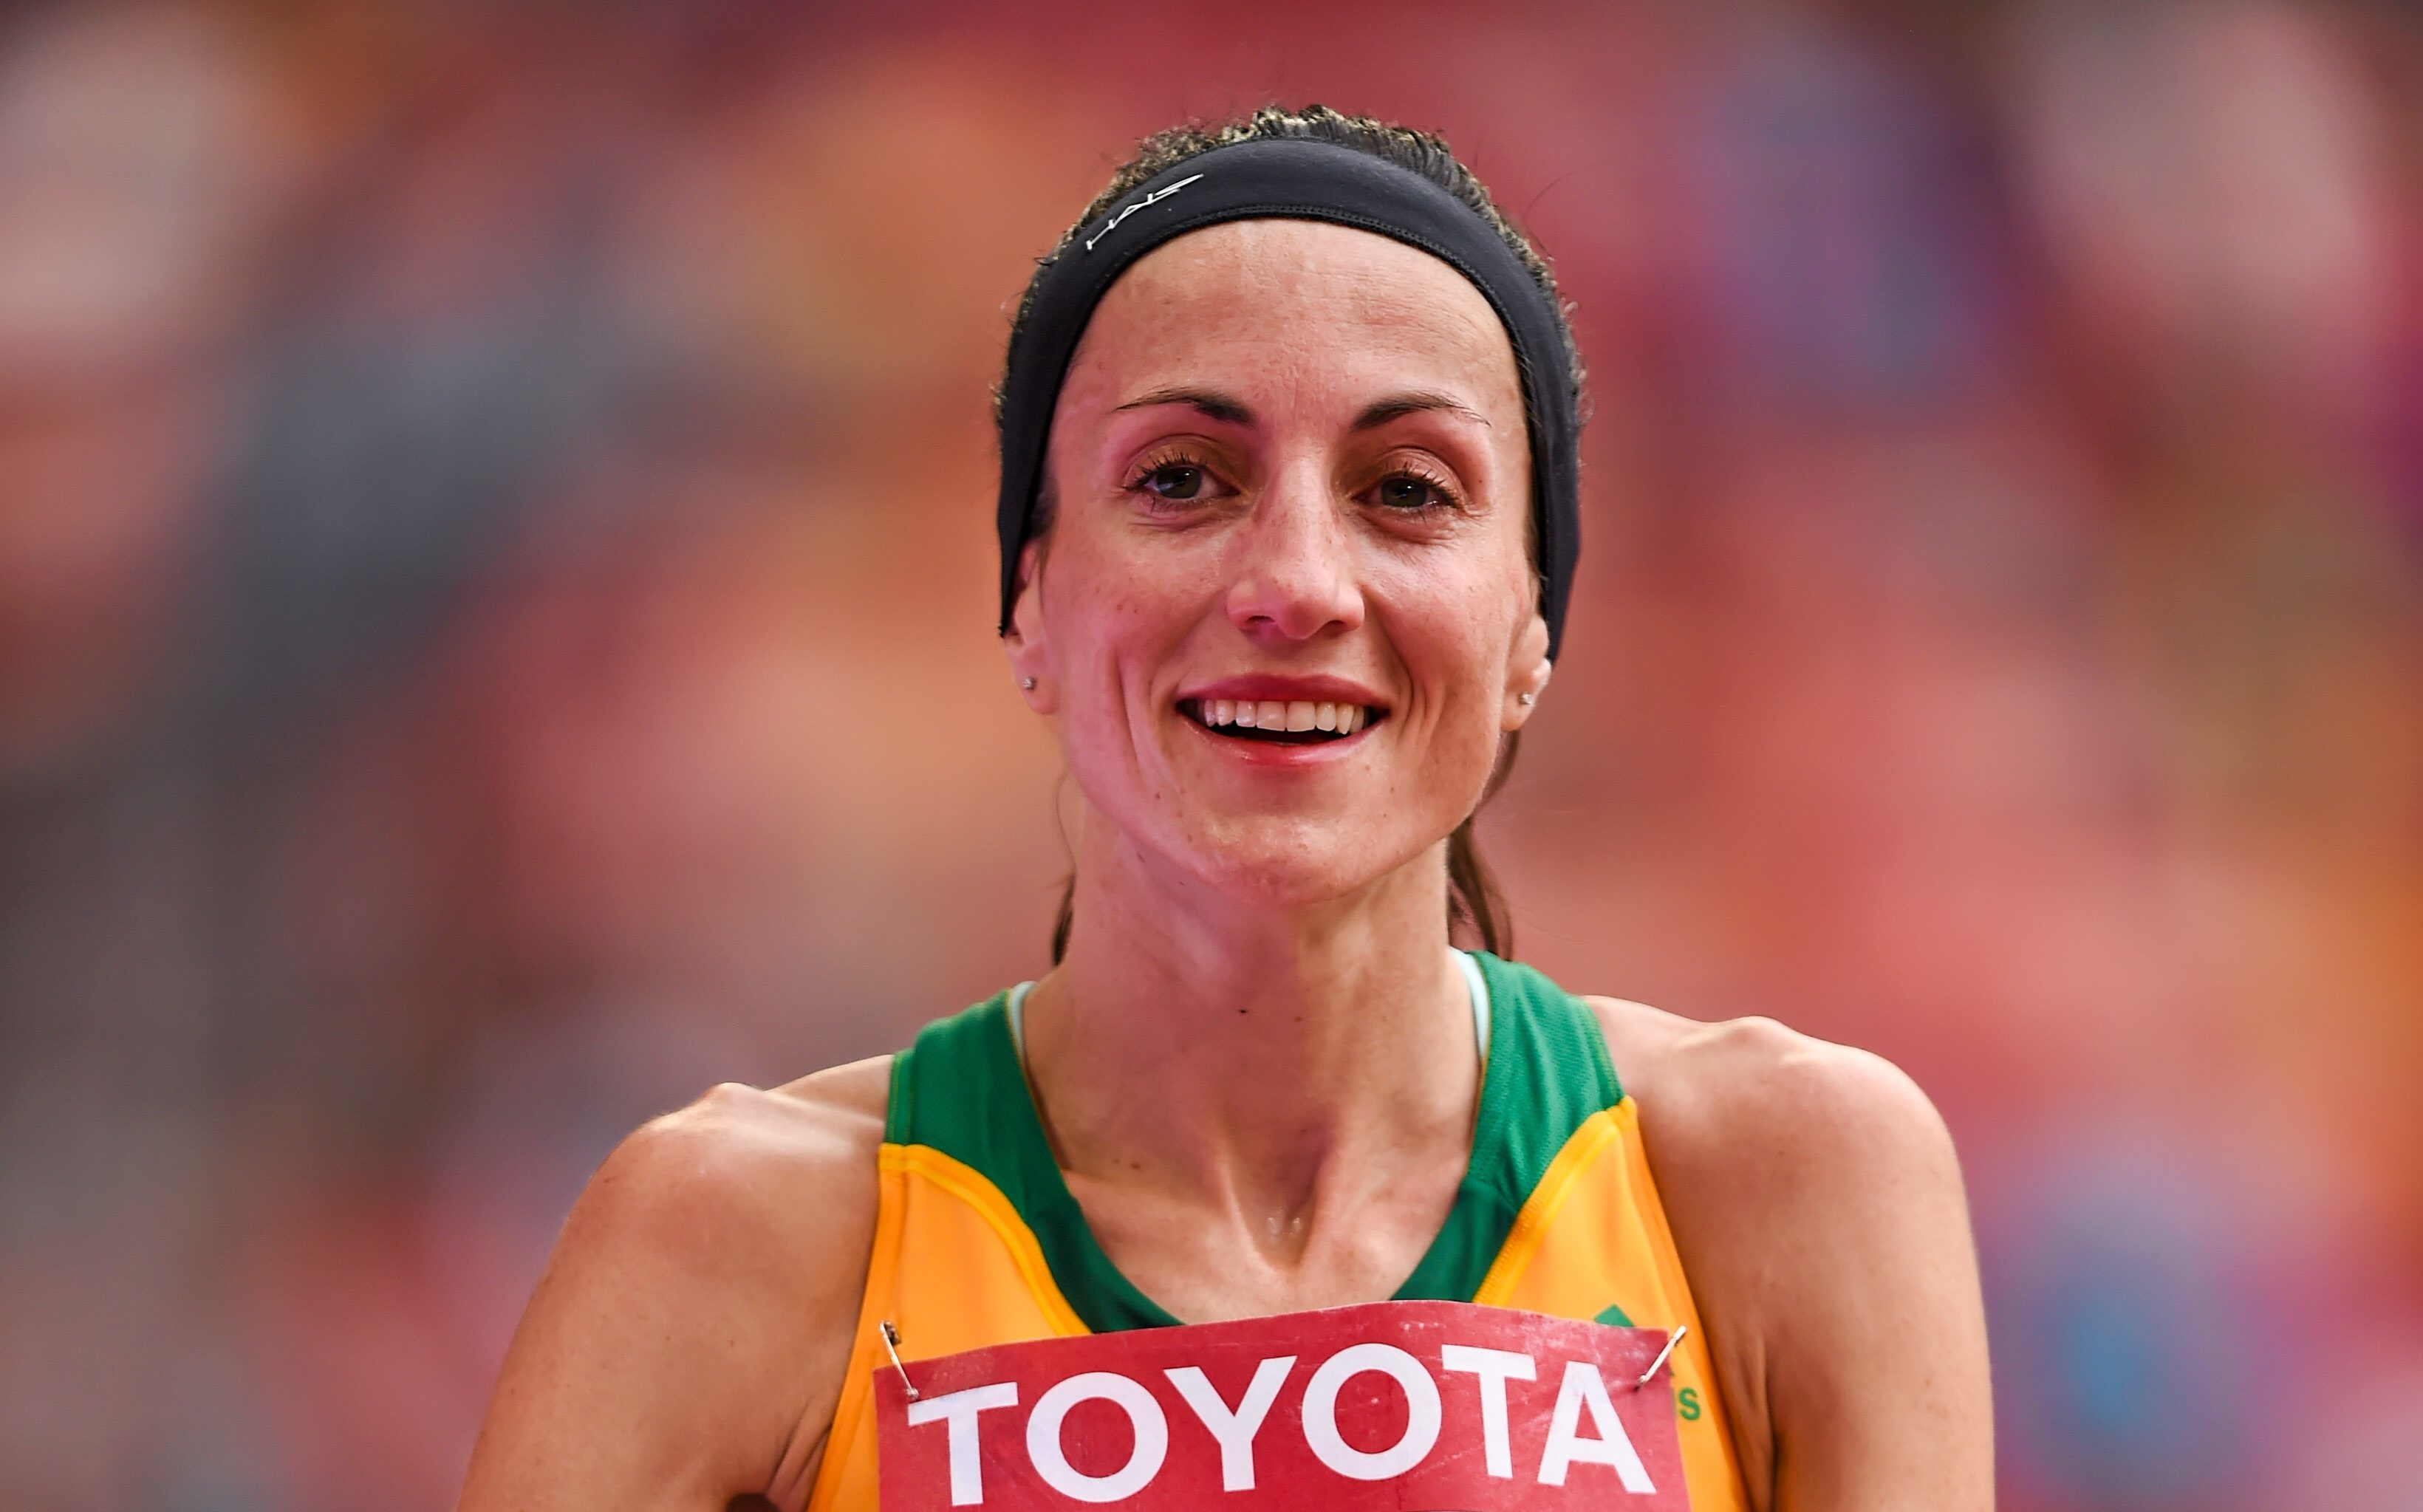 30 August 2015; Sinead Diver, from Belmullet, Co. Mayo, representing Australia, following her 21st place finish in the Women's Marathon event. IAAF World Athletics Championships Beijing 2015 - Day 9, National Stadium, Beijing, China. Picture credit: Stephen McCarthy / SPORTSFILE (Photo by Sportsfile/Corbis via Getty Images)